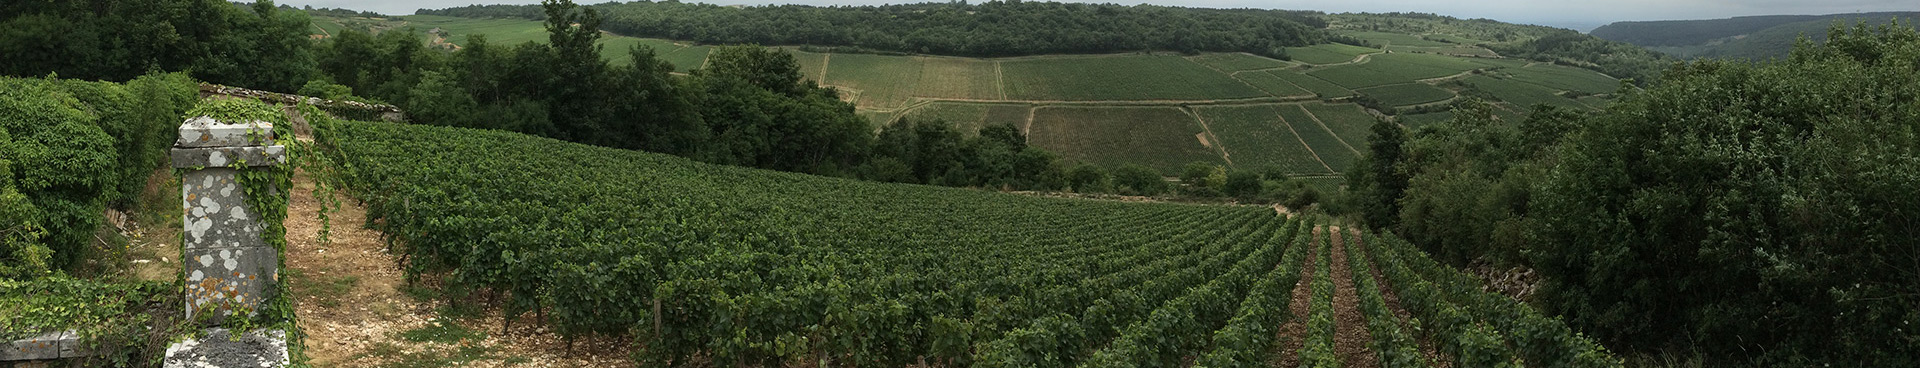 Picture of a vineyard in Burgundy